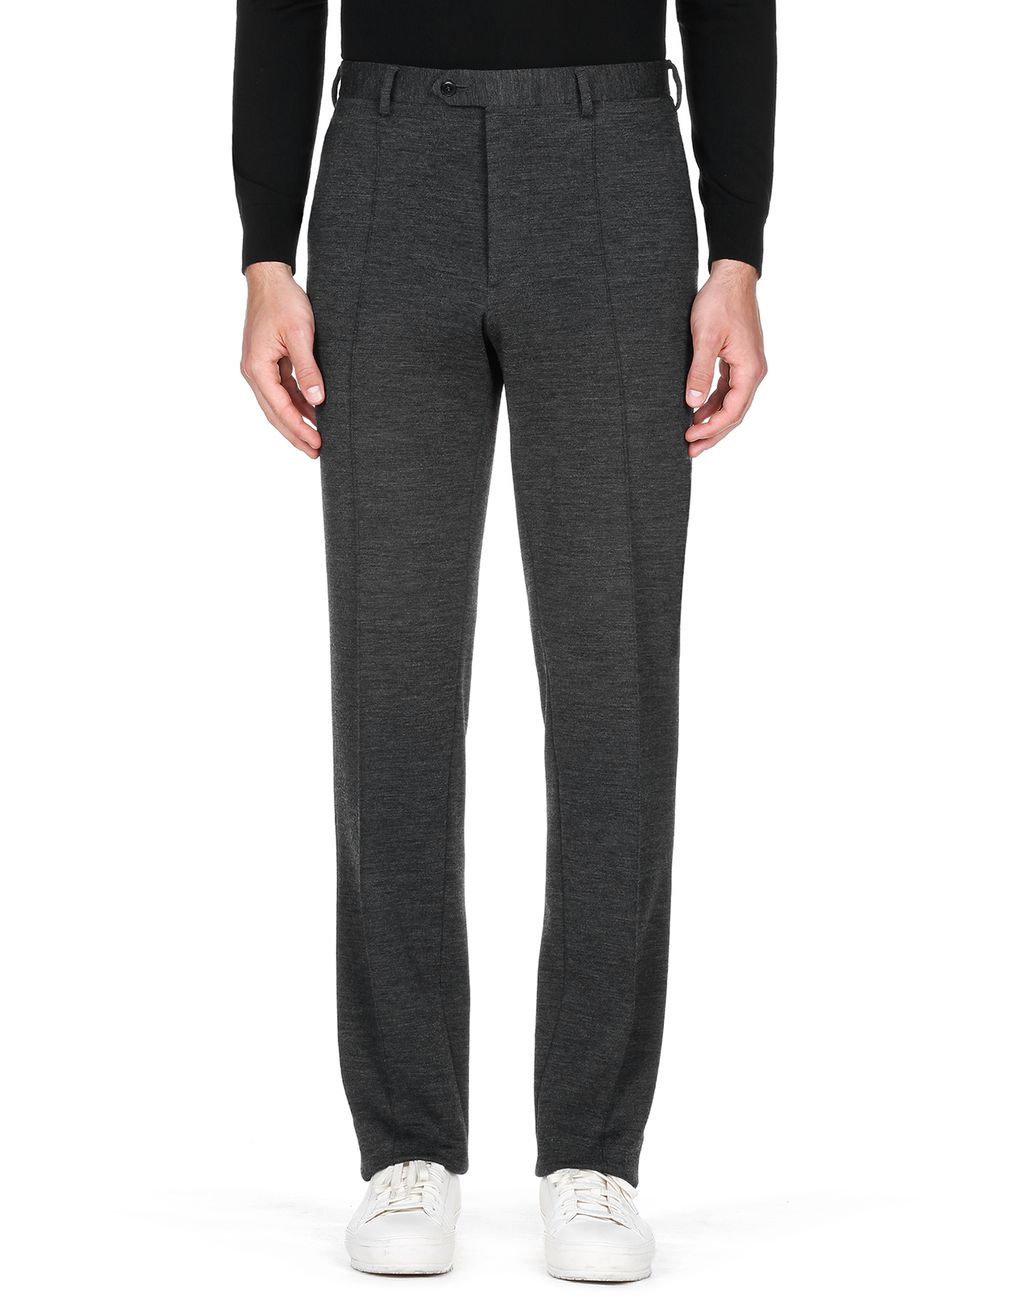 BRIONI Antrachite Grey Jersey Trousers Trousers Man r